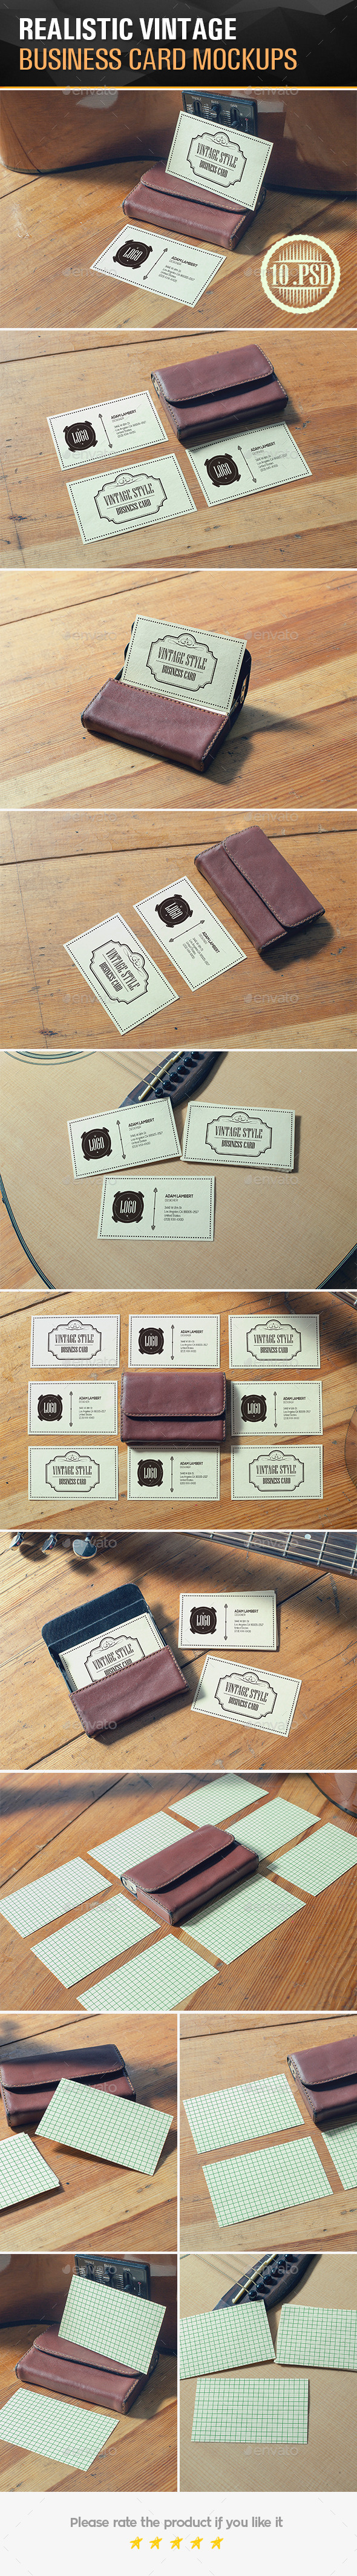 GraphicRiver Realistic Vintage Business Card Mockups 11851576